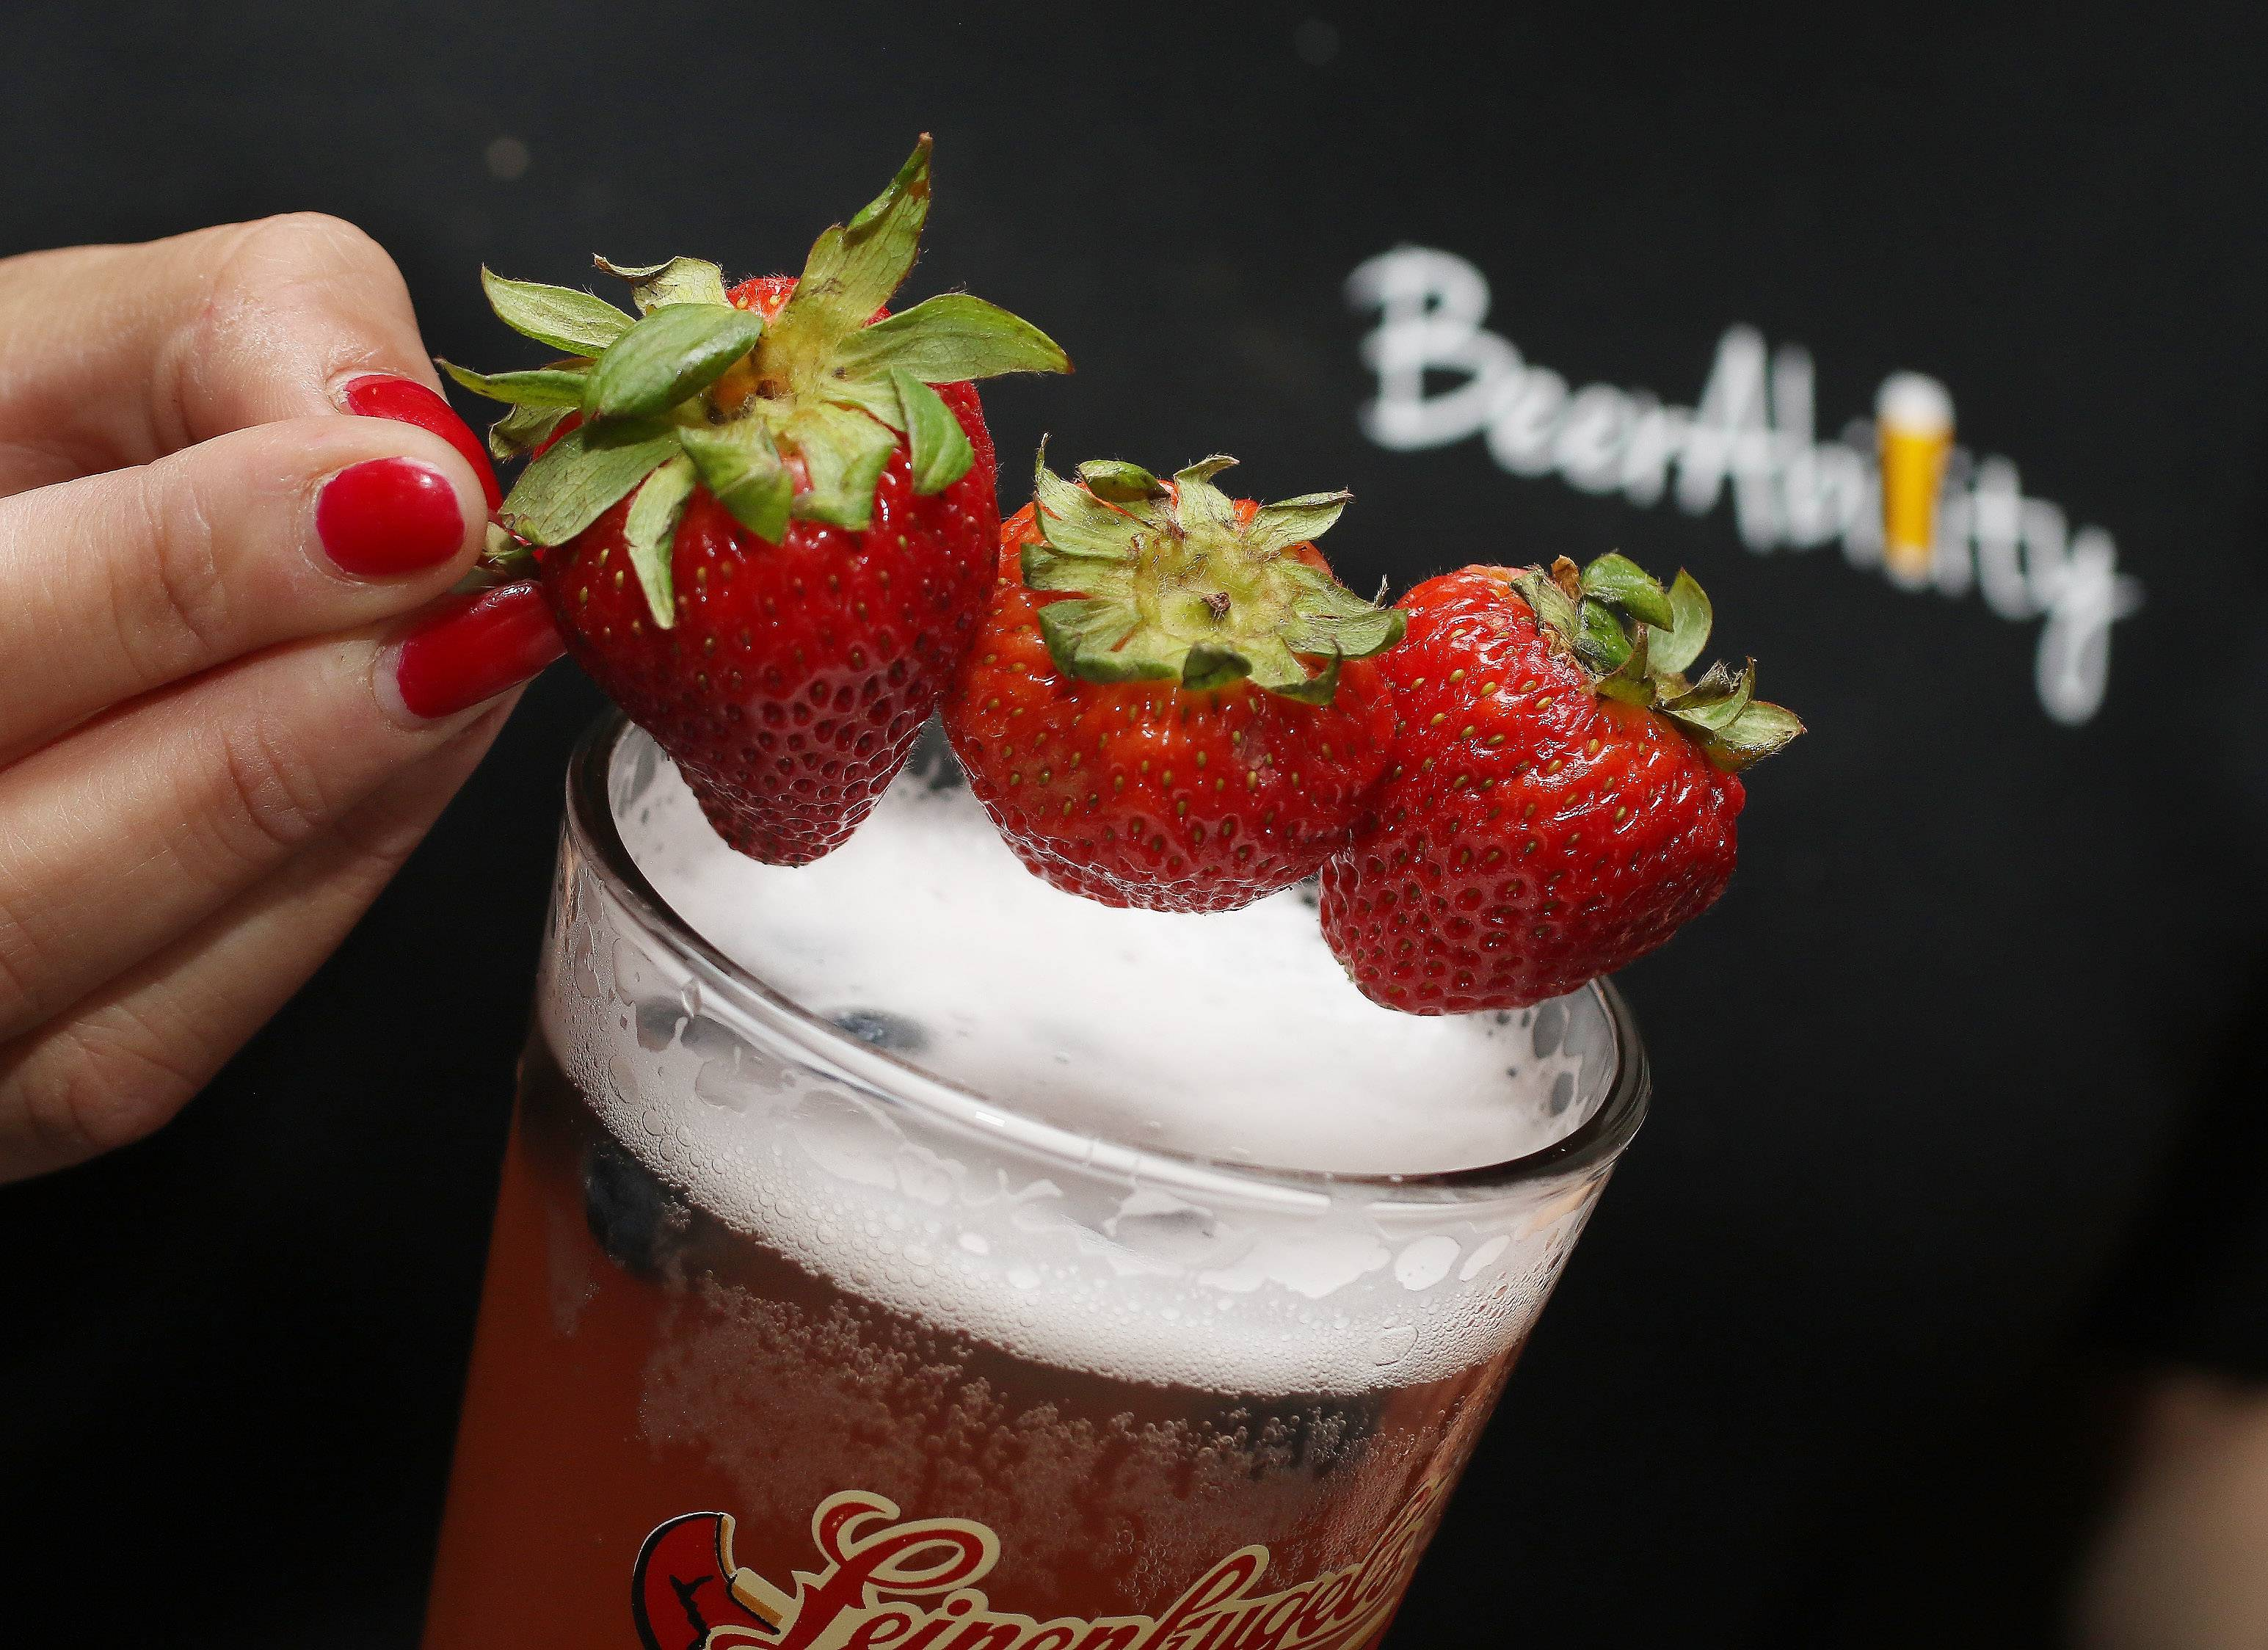 A strawberry garnish is added to the Mixed Berry Summer Shanty at BeerAbility pub in Round Lake Heights. The drink is made with mixed berry juice, Summer Shanty with frozen blueberries and strawberries.